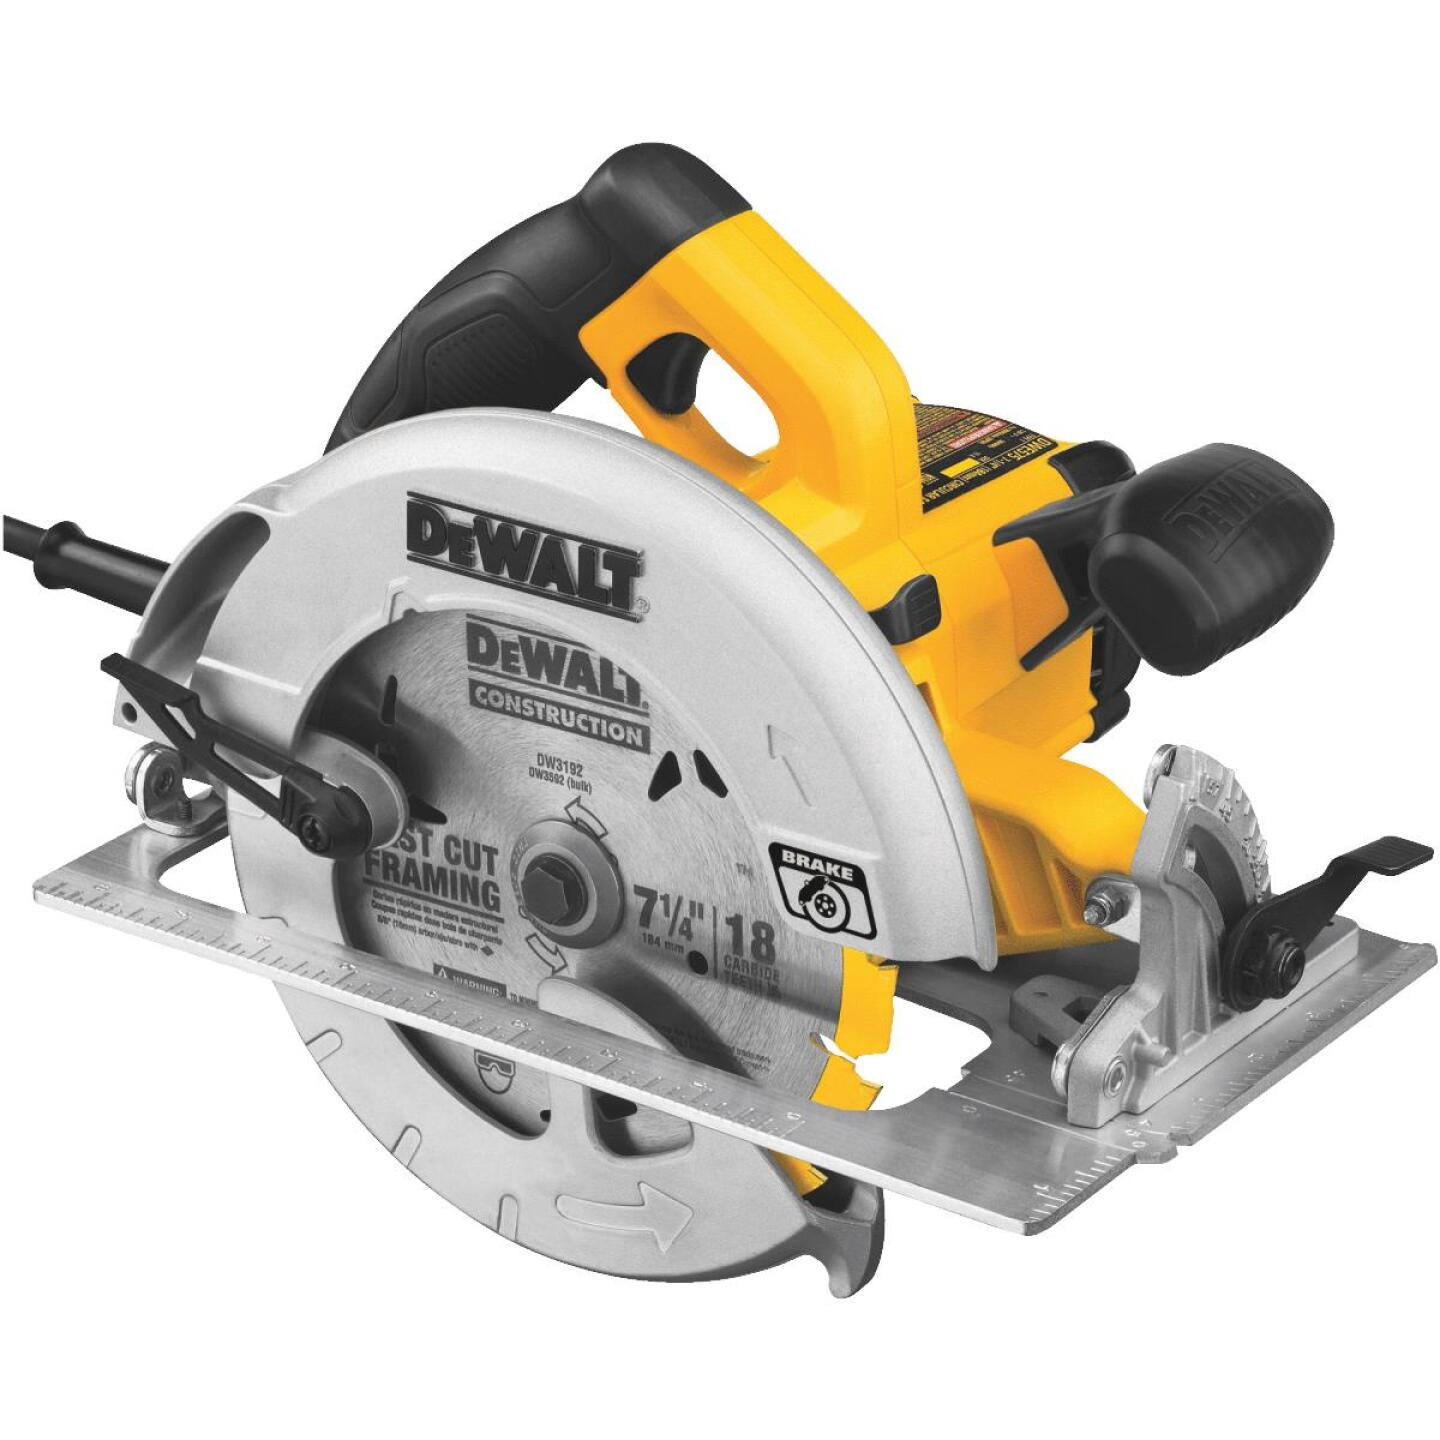 DeWalt 7-1/4 In. 15-Amp Circular Saw with Electric Brake Image 1